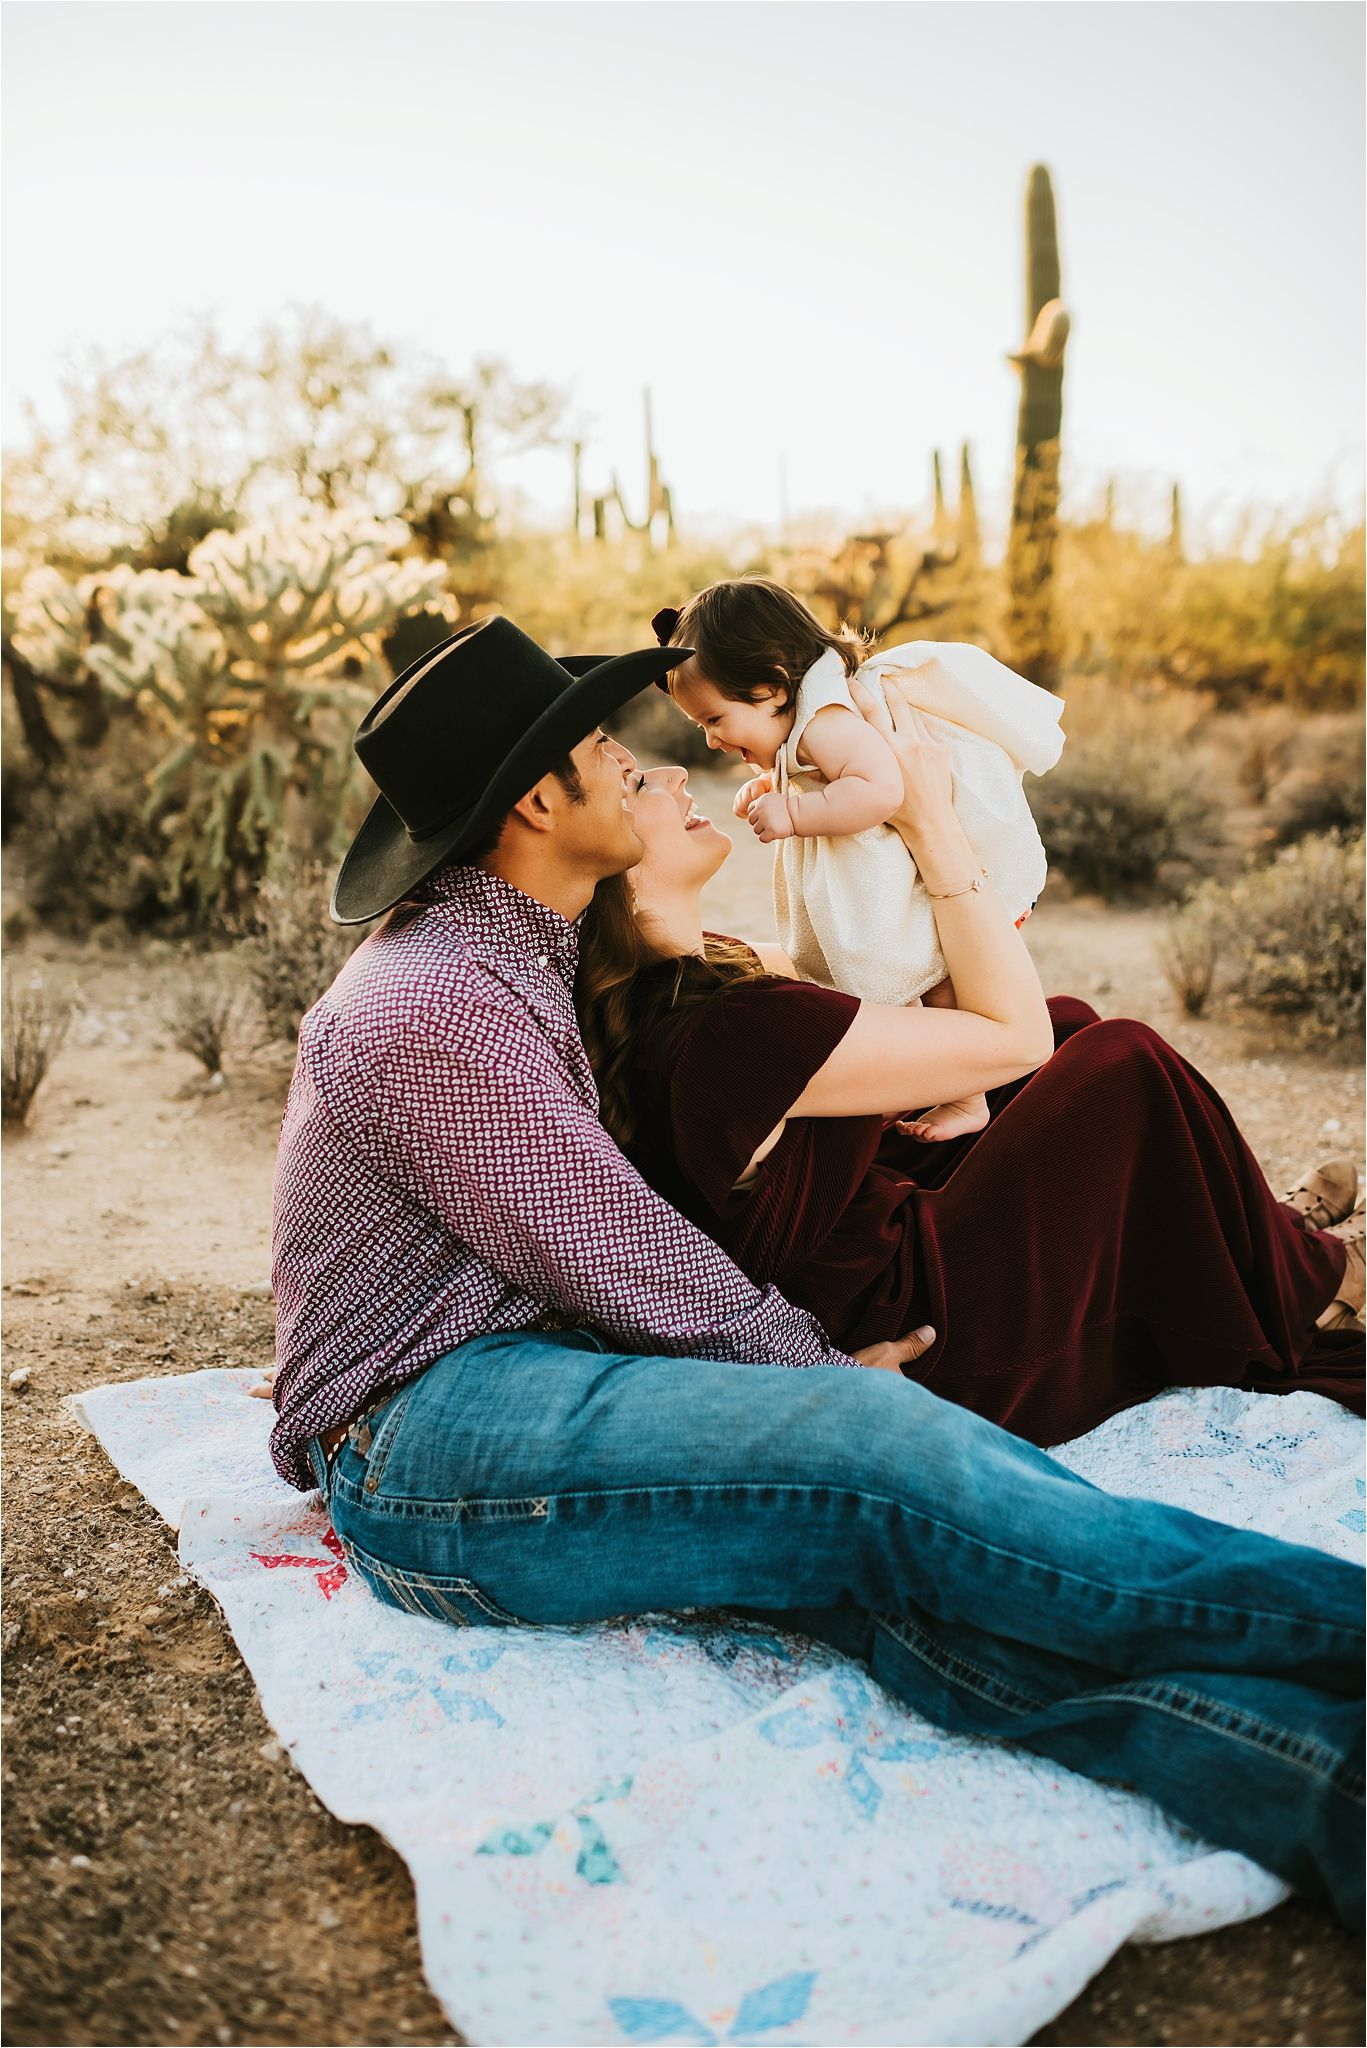 Family session in Sabino Canyon AZ-Tucson Family Photographer-04